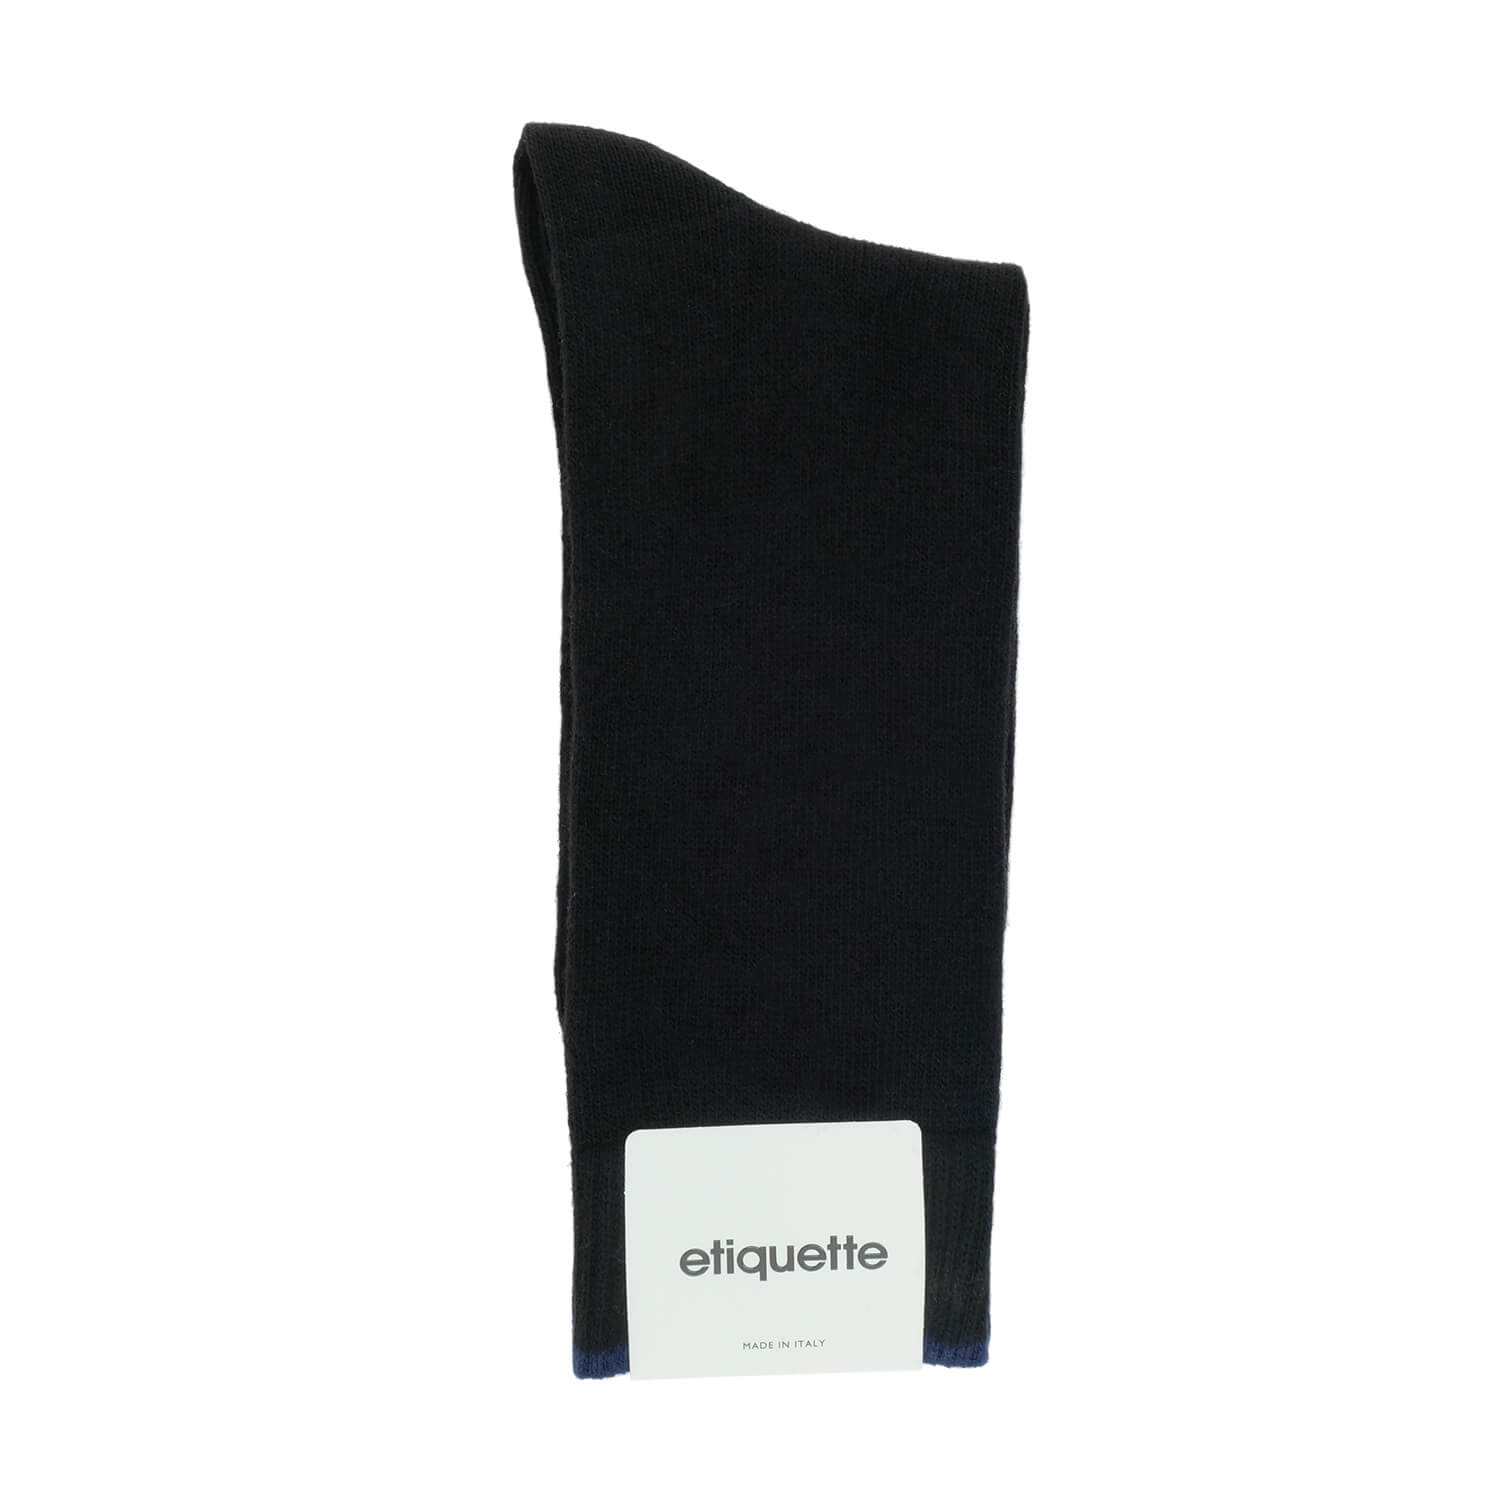 Cashmere Flat Knit - Black - Mens Socks | Etiquette Clothiers Global Official